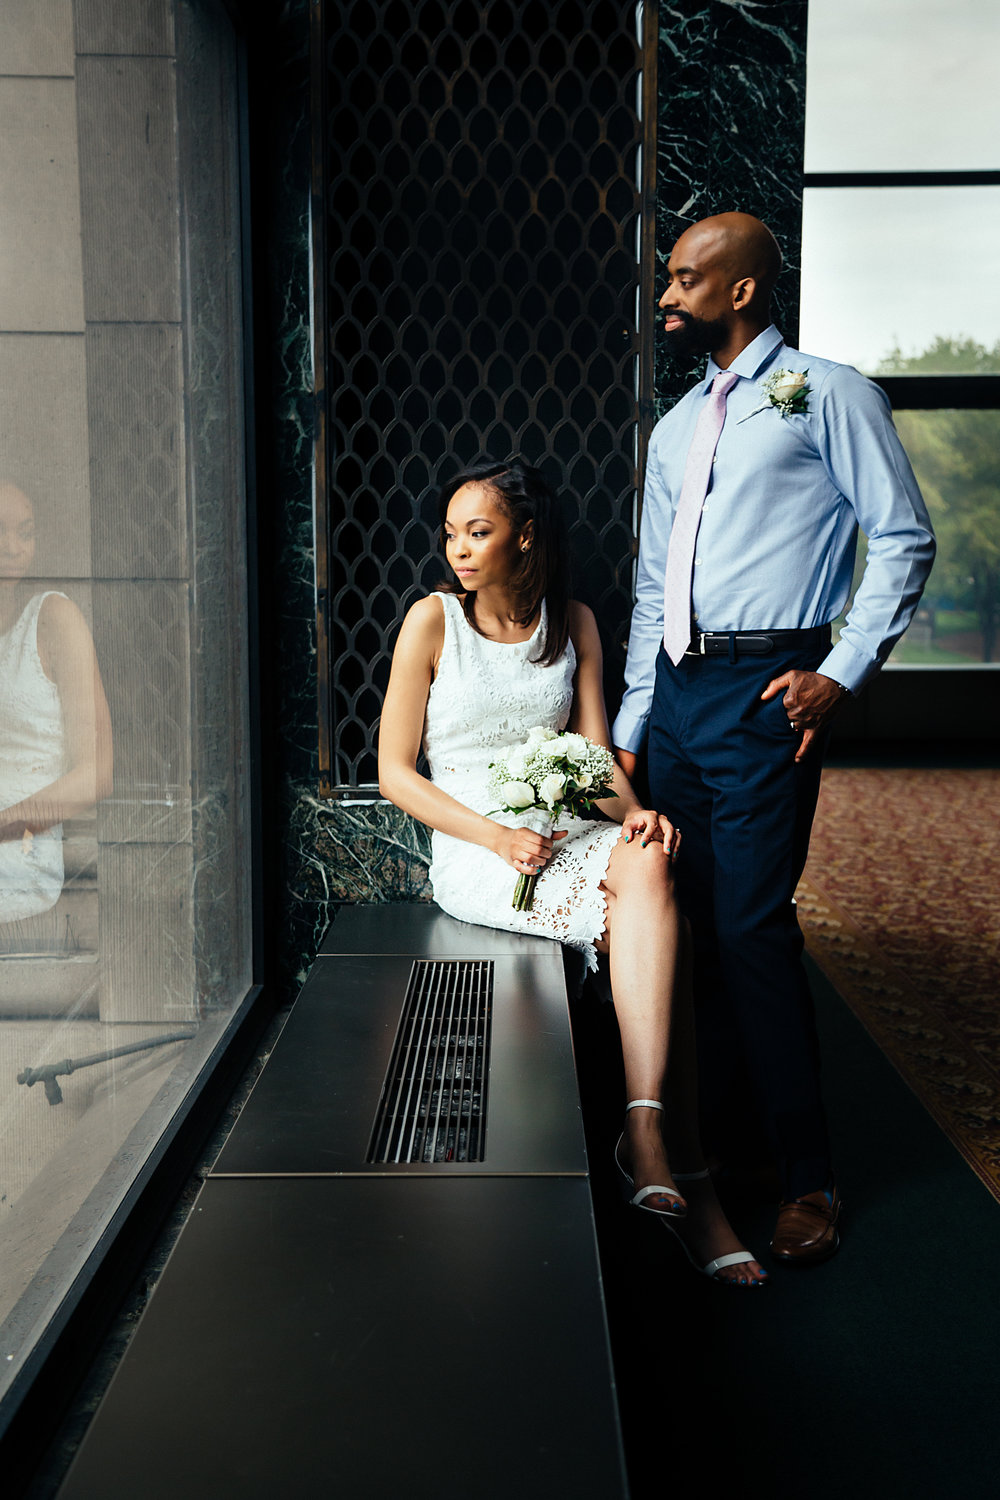 chicago_elopement_tony_brittany-25.jpg